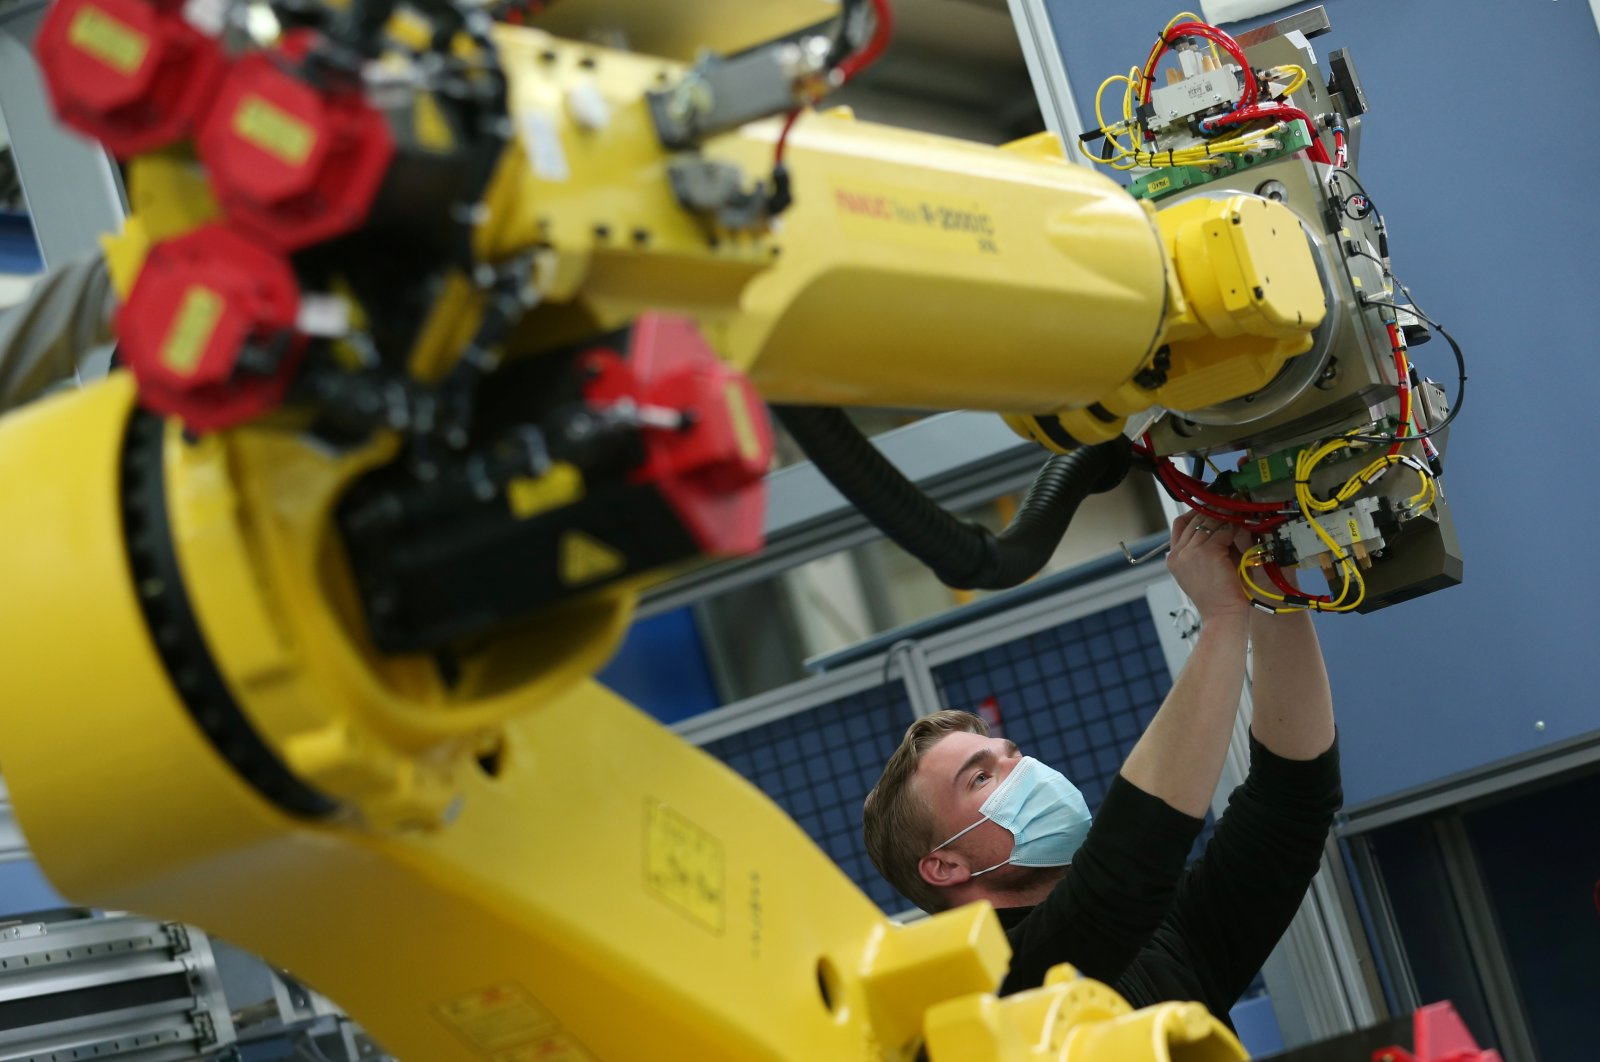 An employee works on an industrial robot at HAHN Automation company in Rheinboellen, Germany, Nov. 11, 2020.  (Reuters Photo)